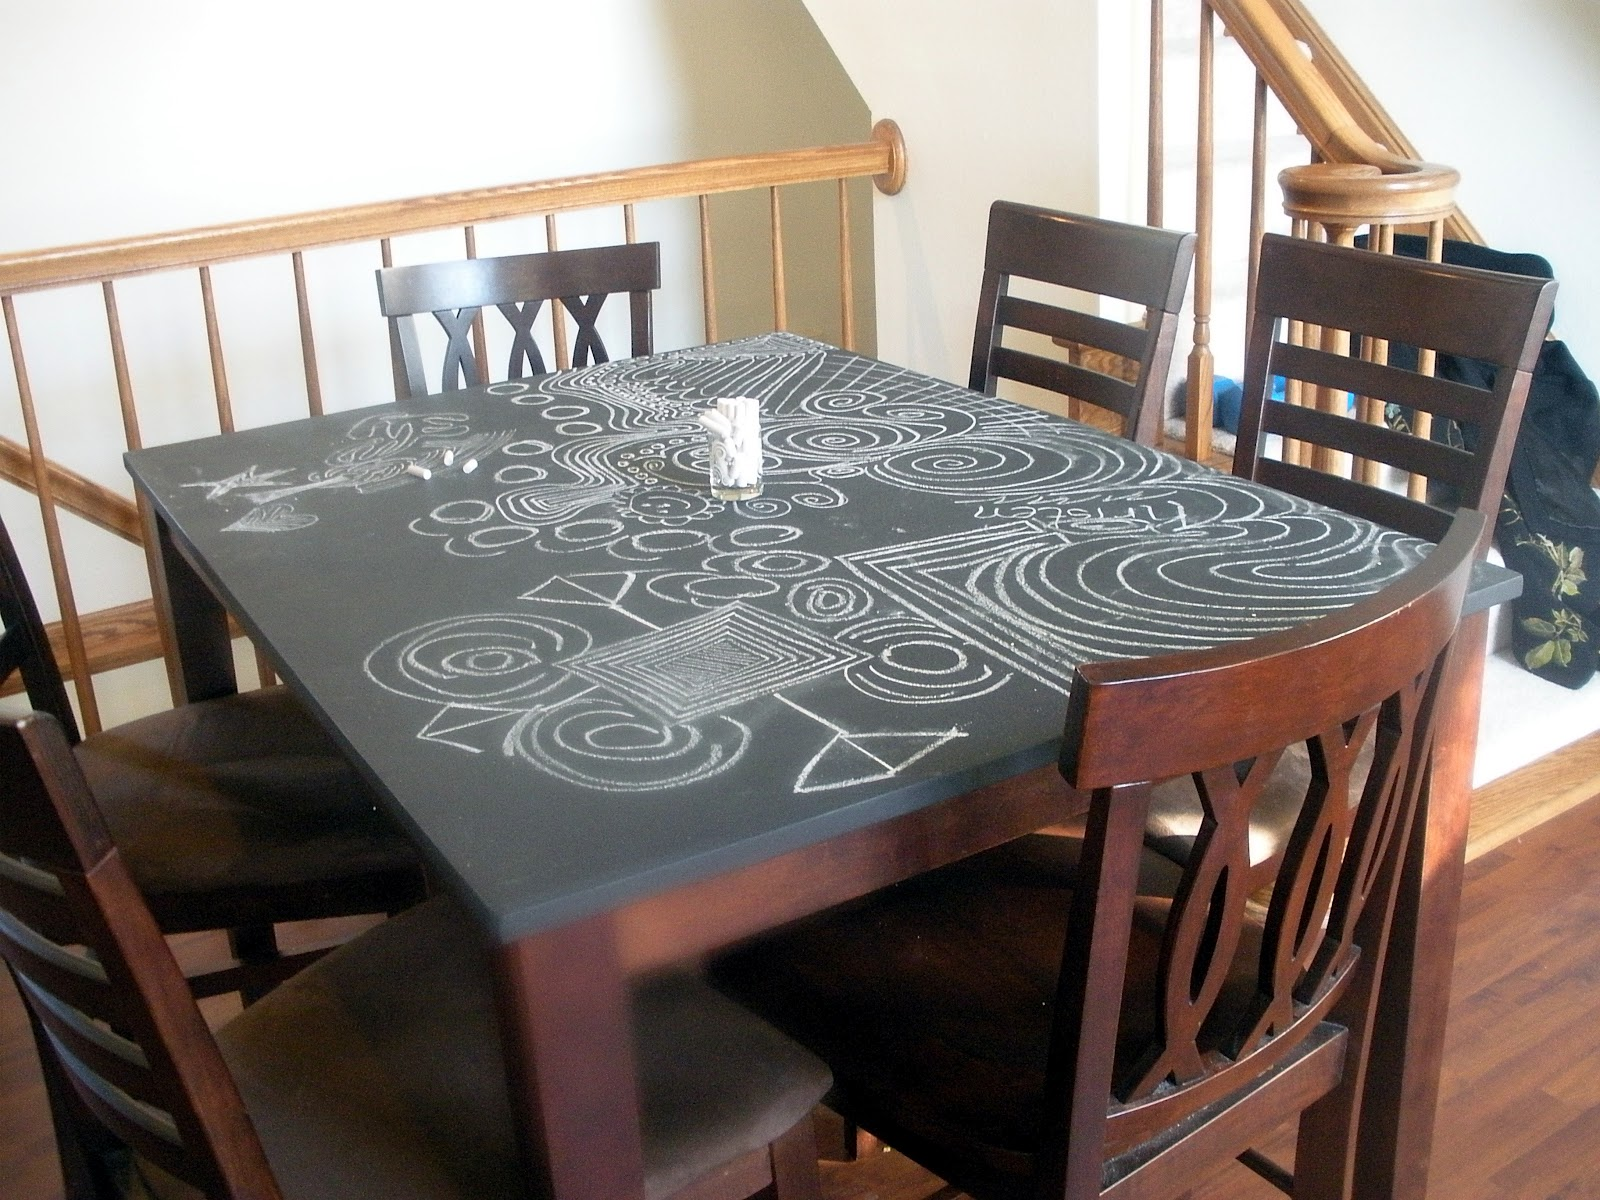 Best Table For Small Dining Room: